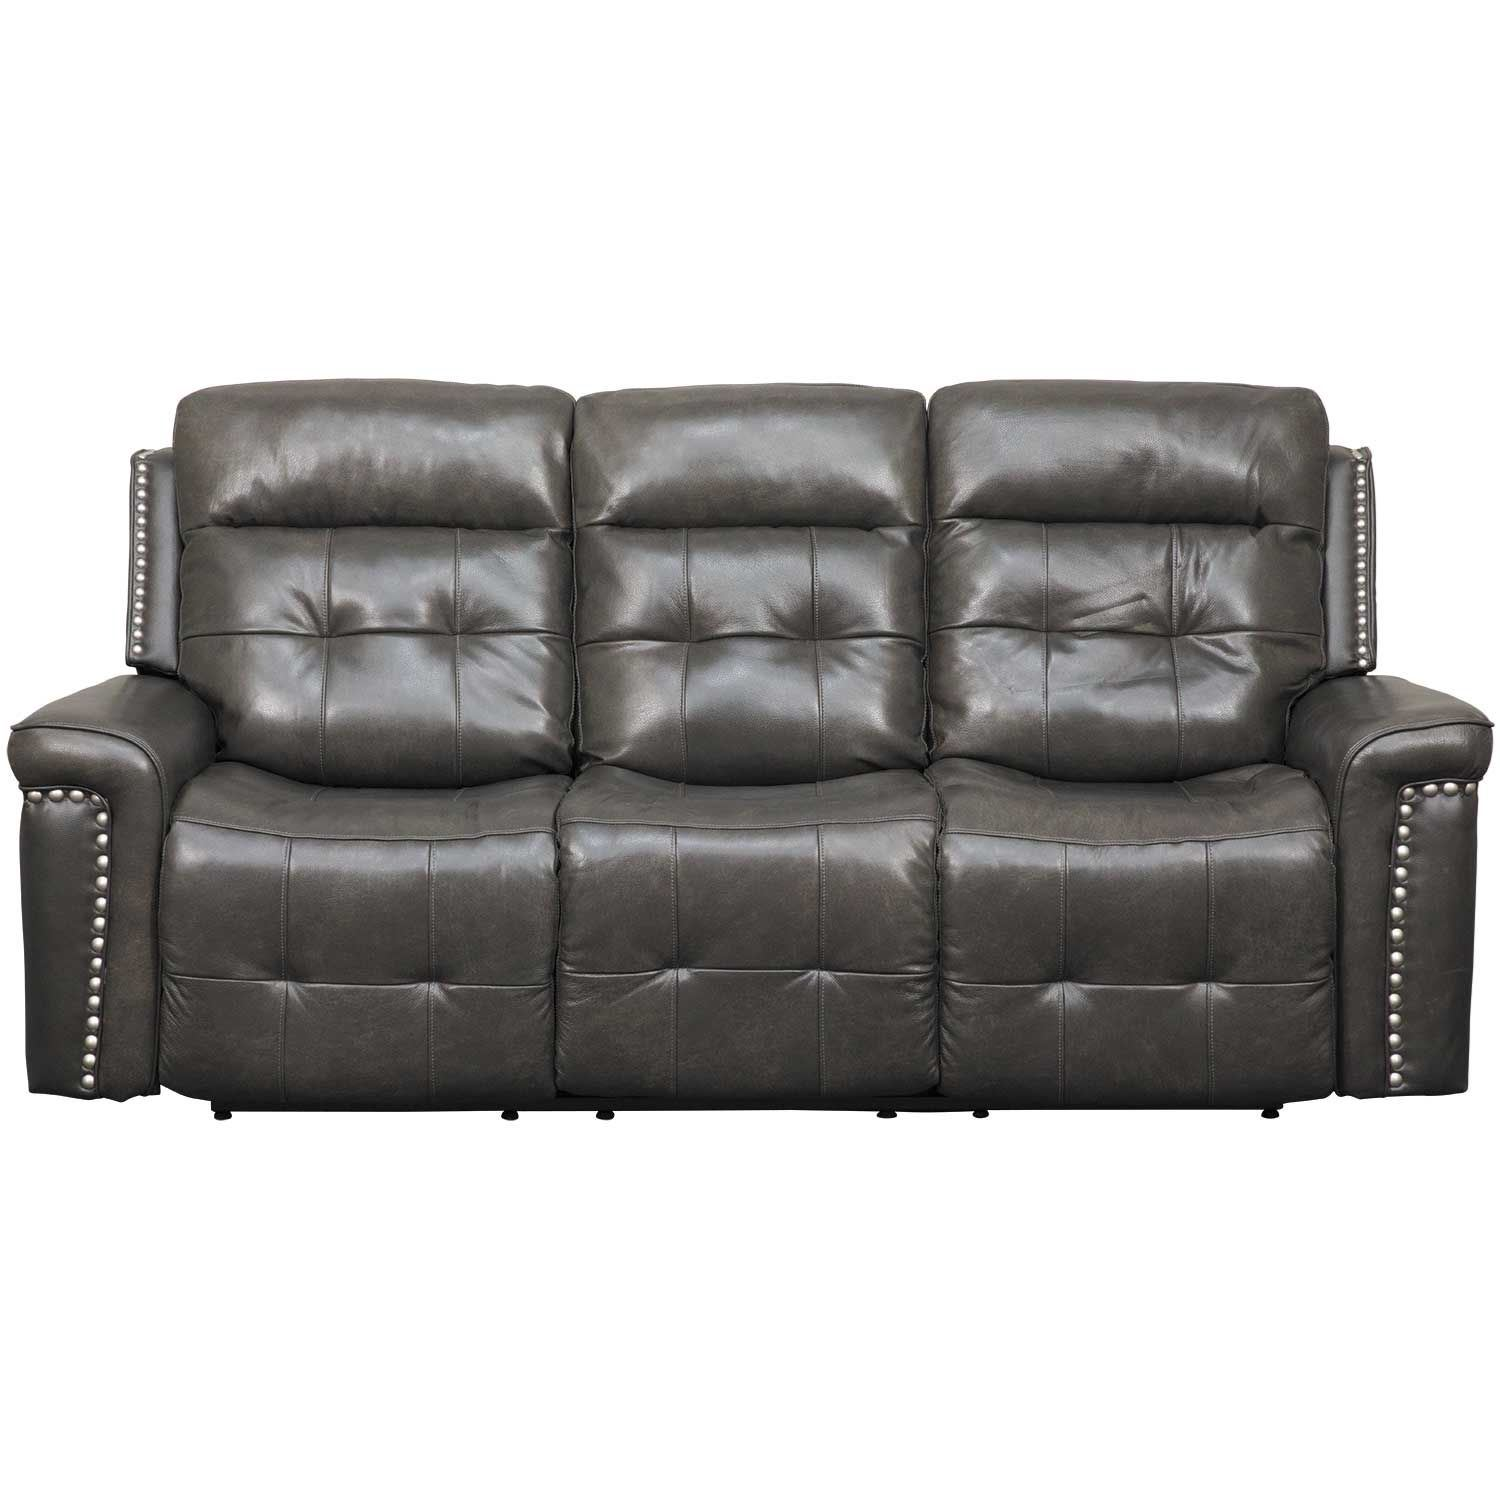 Picture Of Kenzie Leather Reclining Sofa